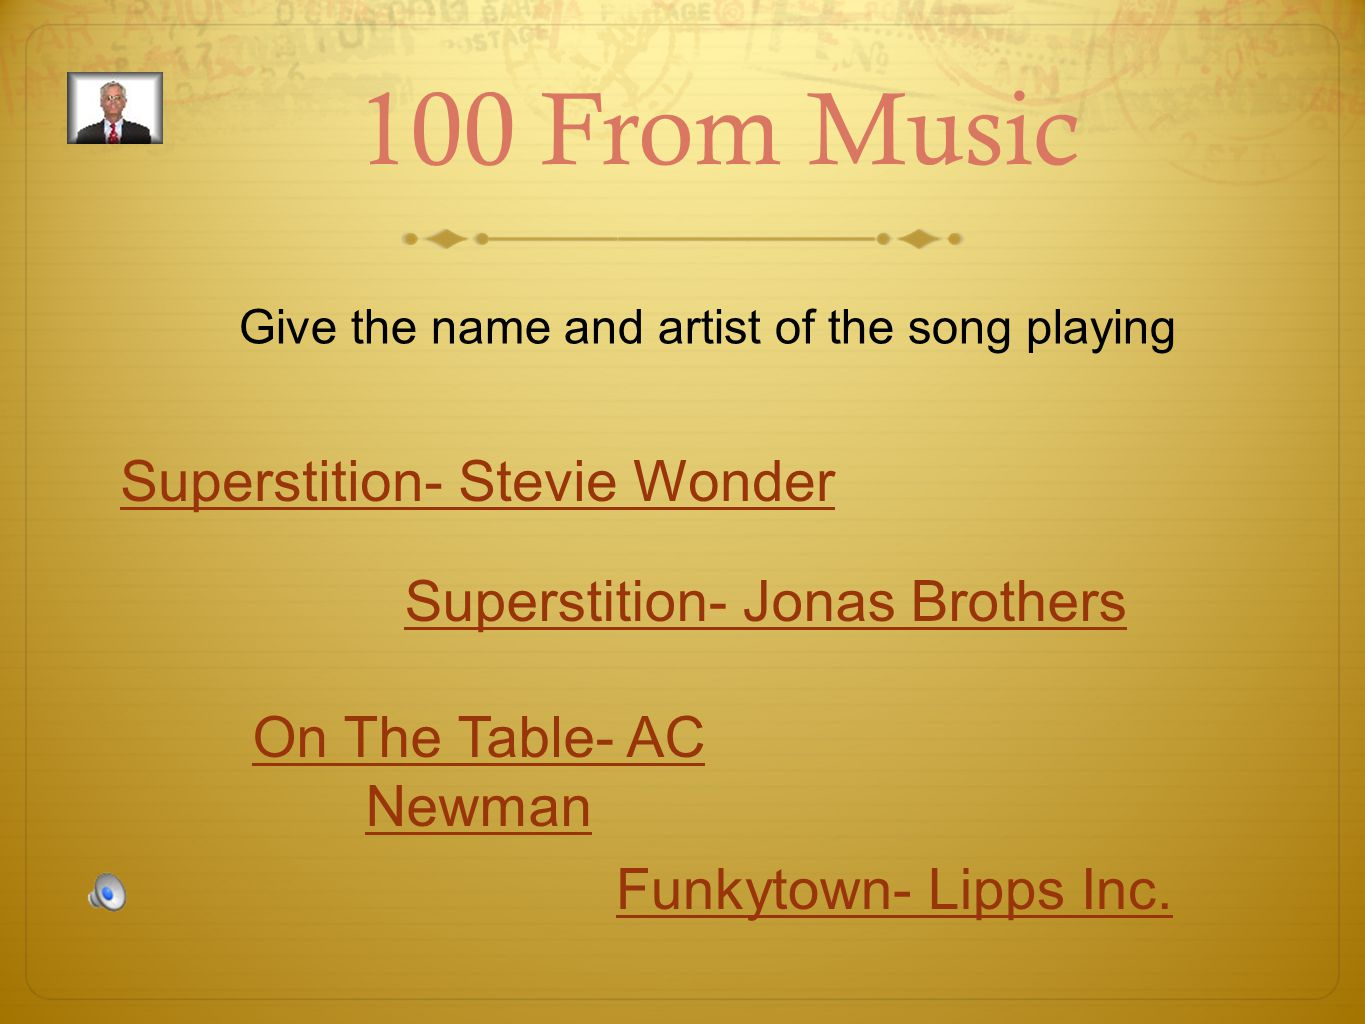 100 From Music Give the name and artist of the song playing Superstition- Stevie Wonder Superstition- Jonas Brothers Funkytown- Lipps Inc.